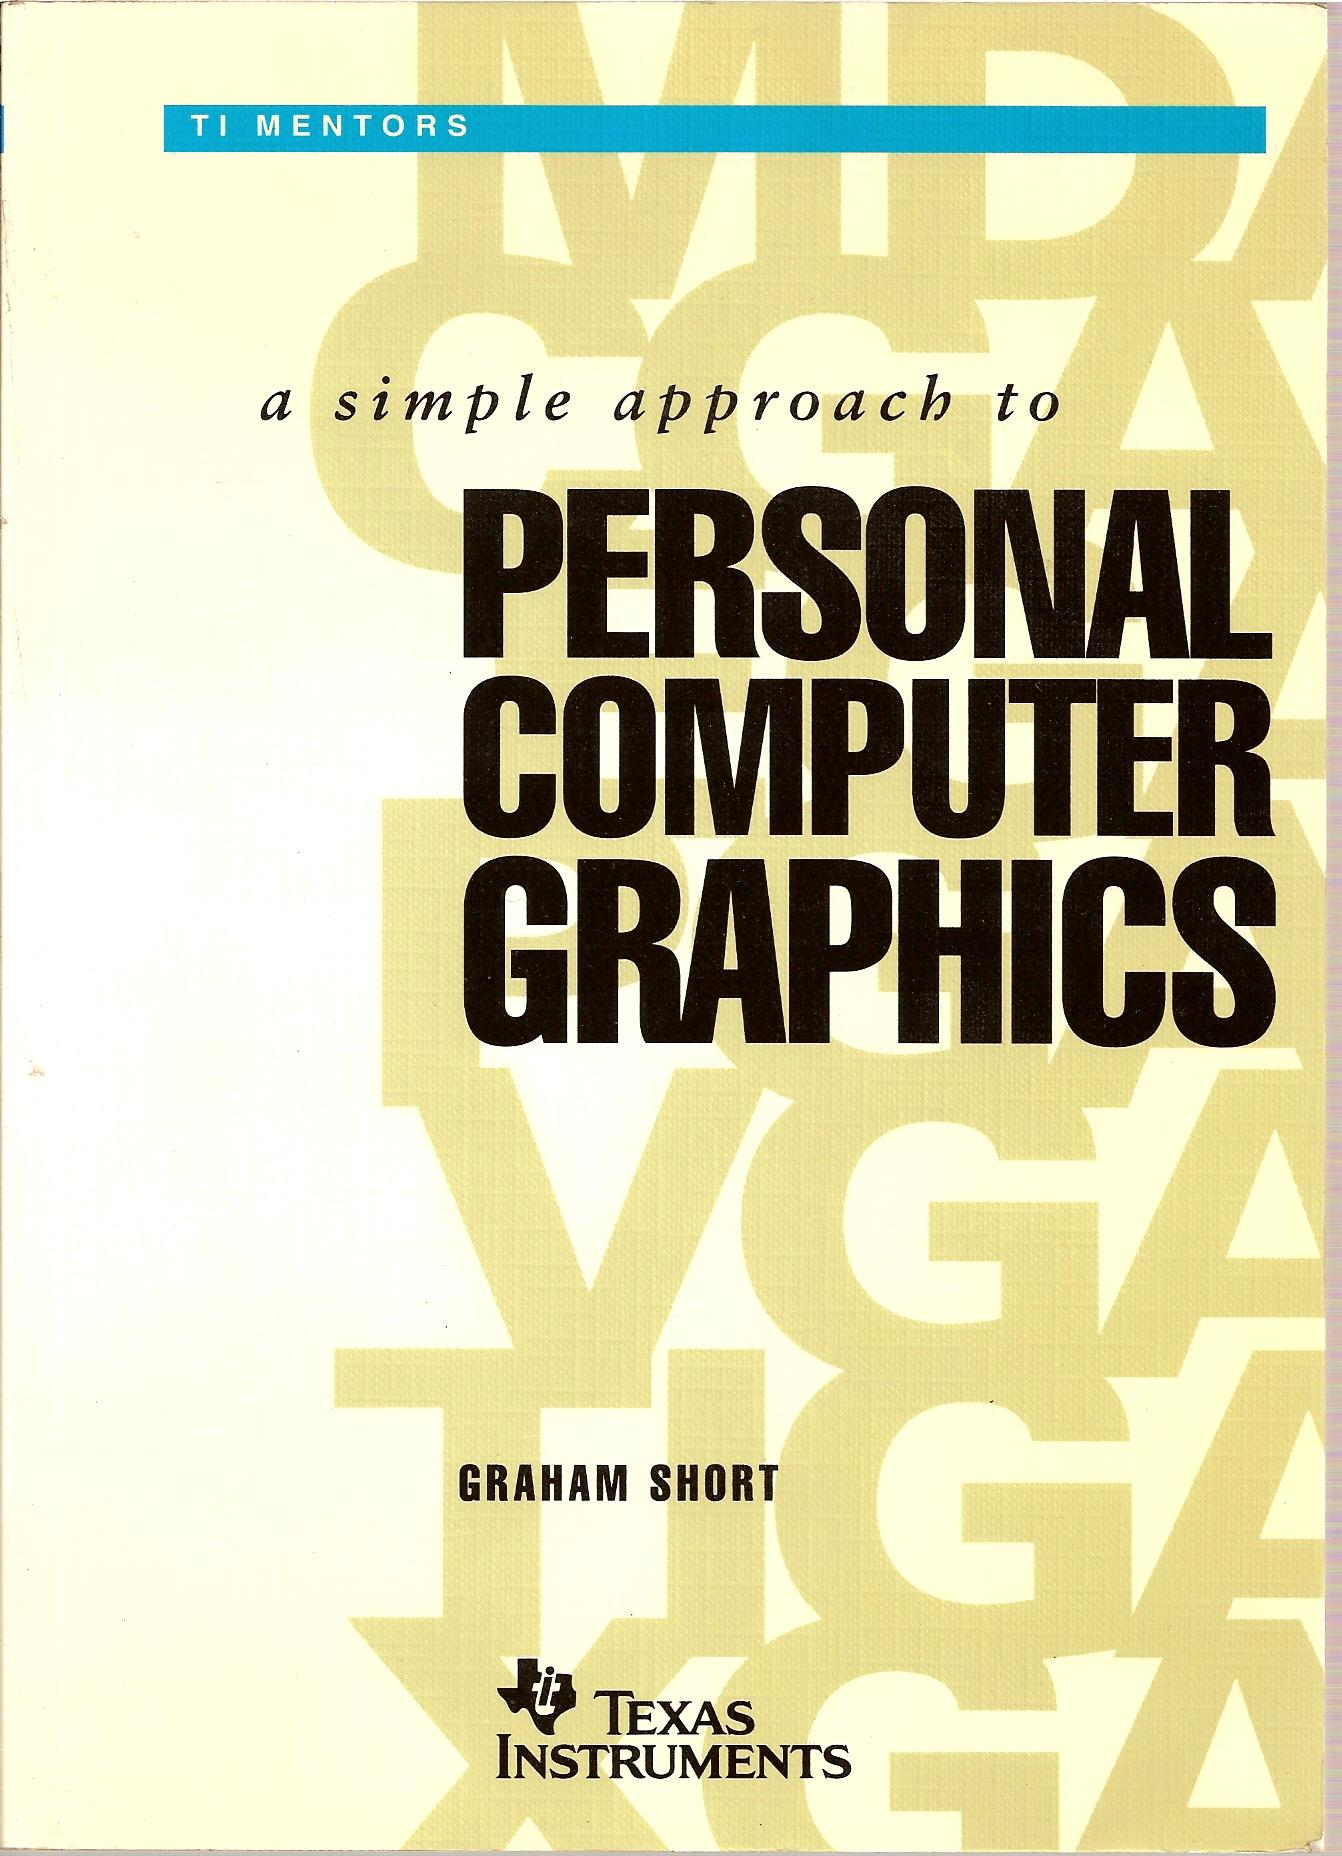 a simple approach to PERSONAL COMPUTER GRAPHICS